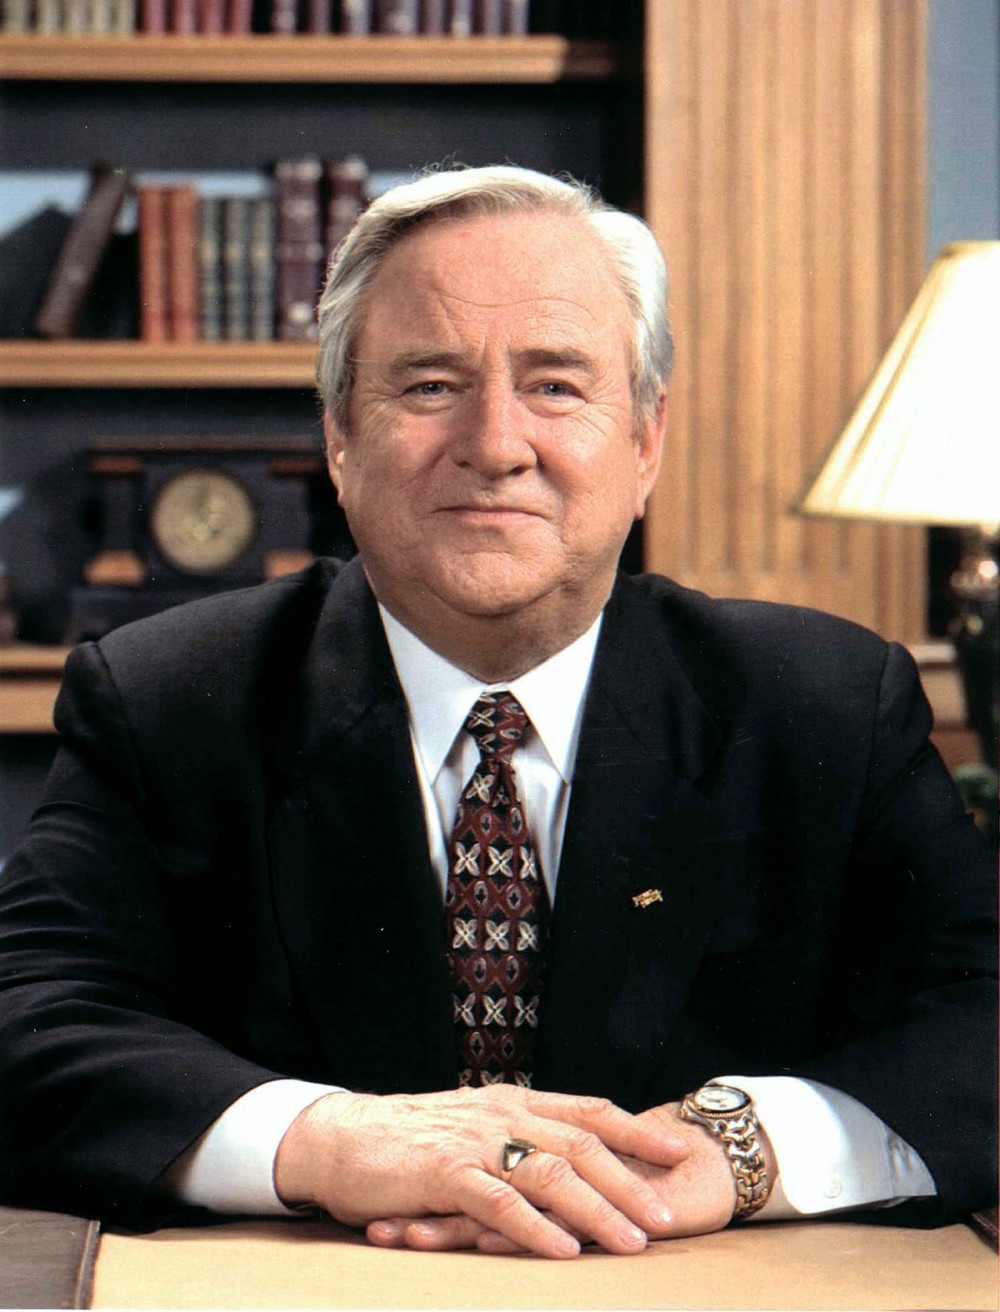 Jerry Falwell, the wildly popular TV evangelist, founded the Moral Majority political organization in the late 1970s. Decrying the demise of the nation's morality, the organization gained a massive following, helping to cement the status of the New Christian Right in American politics. Photograph, date unknown. Wikimedia, http://commons.wikimedia.org/wiki/File:Jerry_Falwell_portrait.jpg.